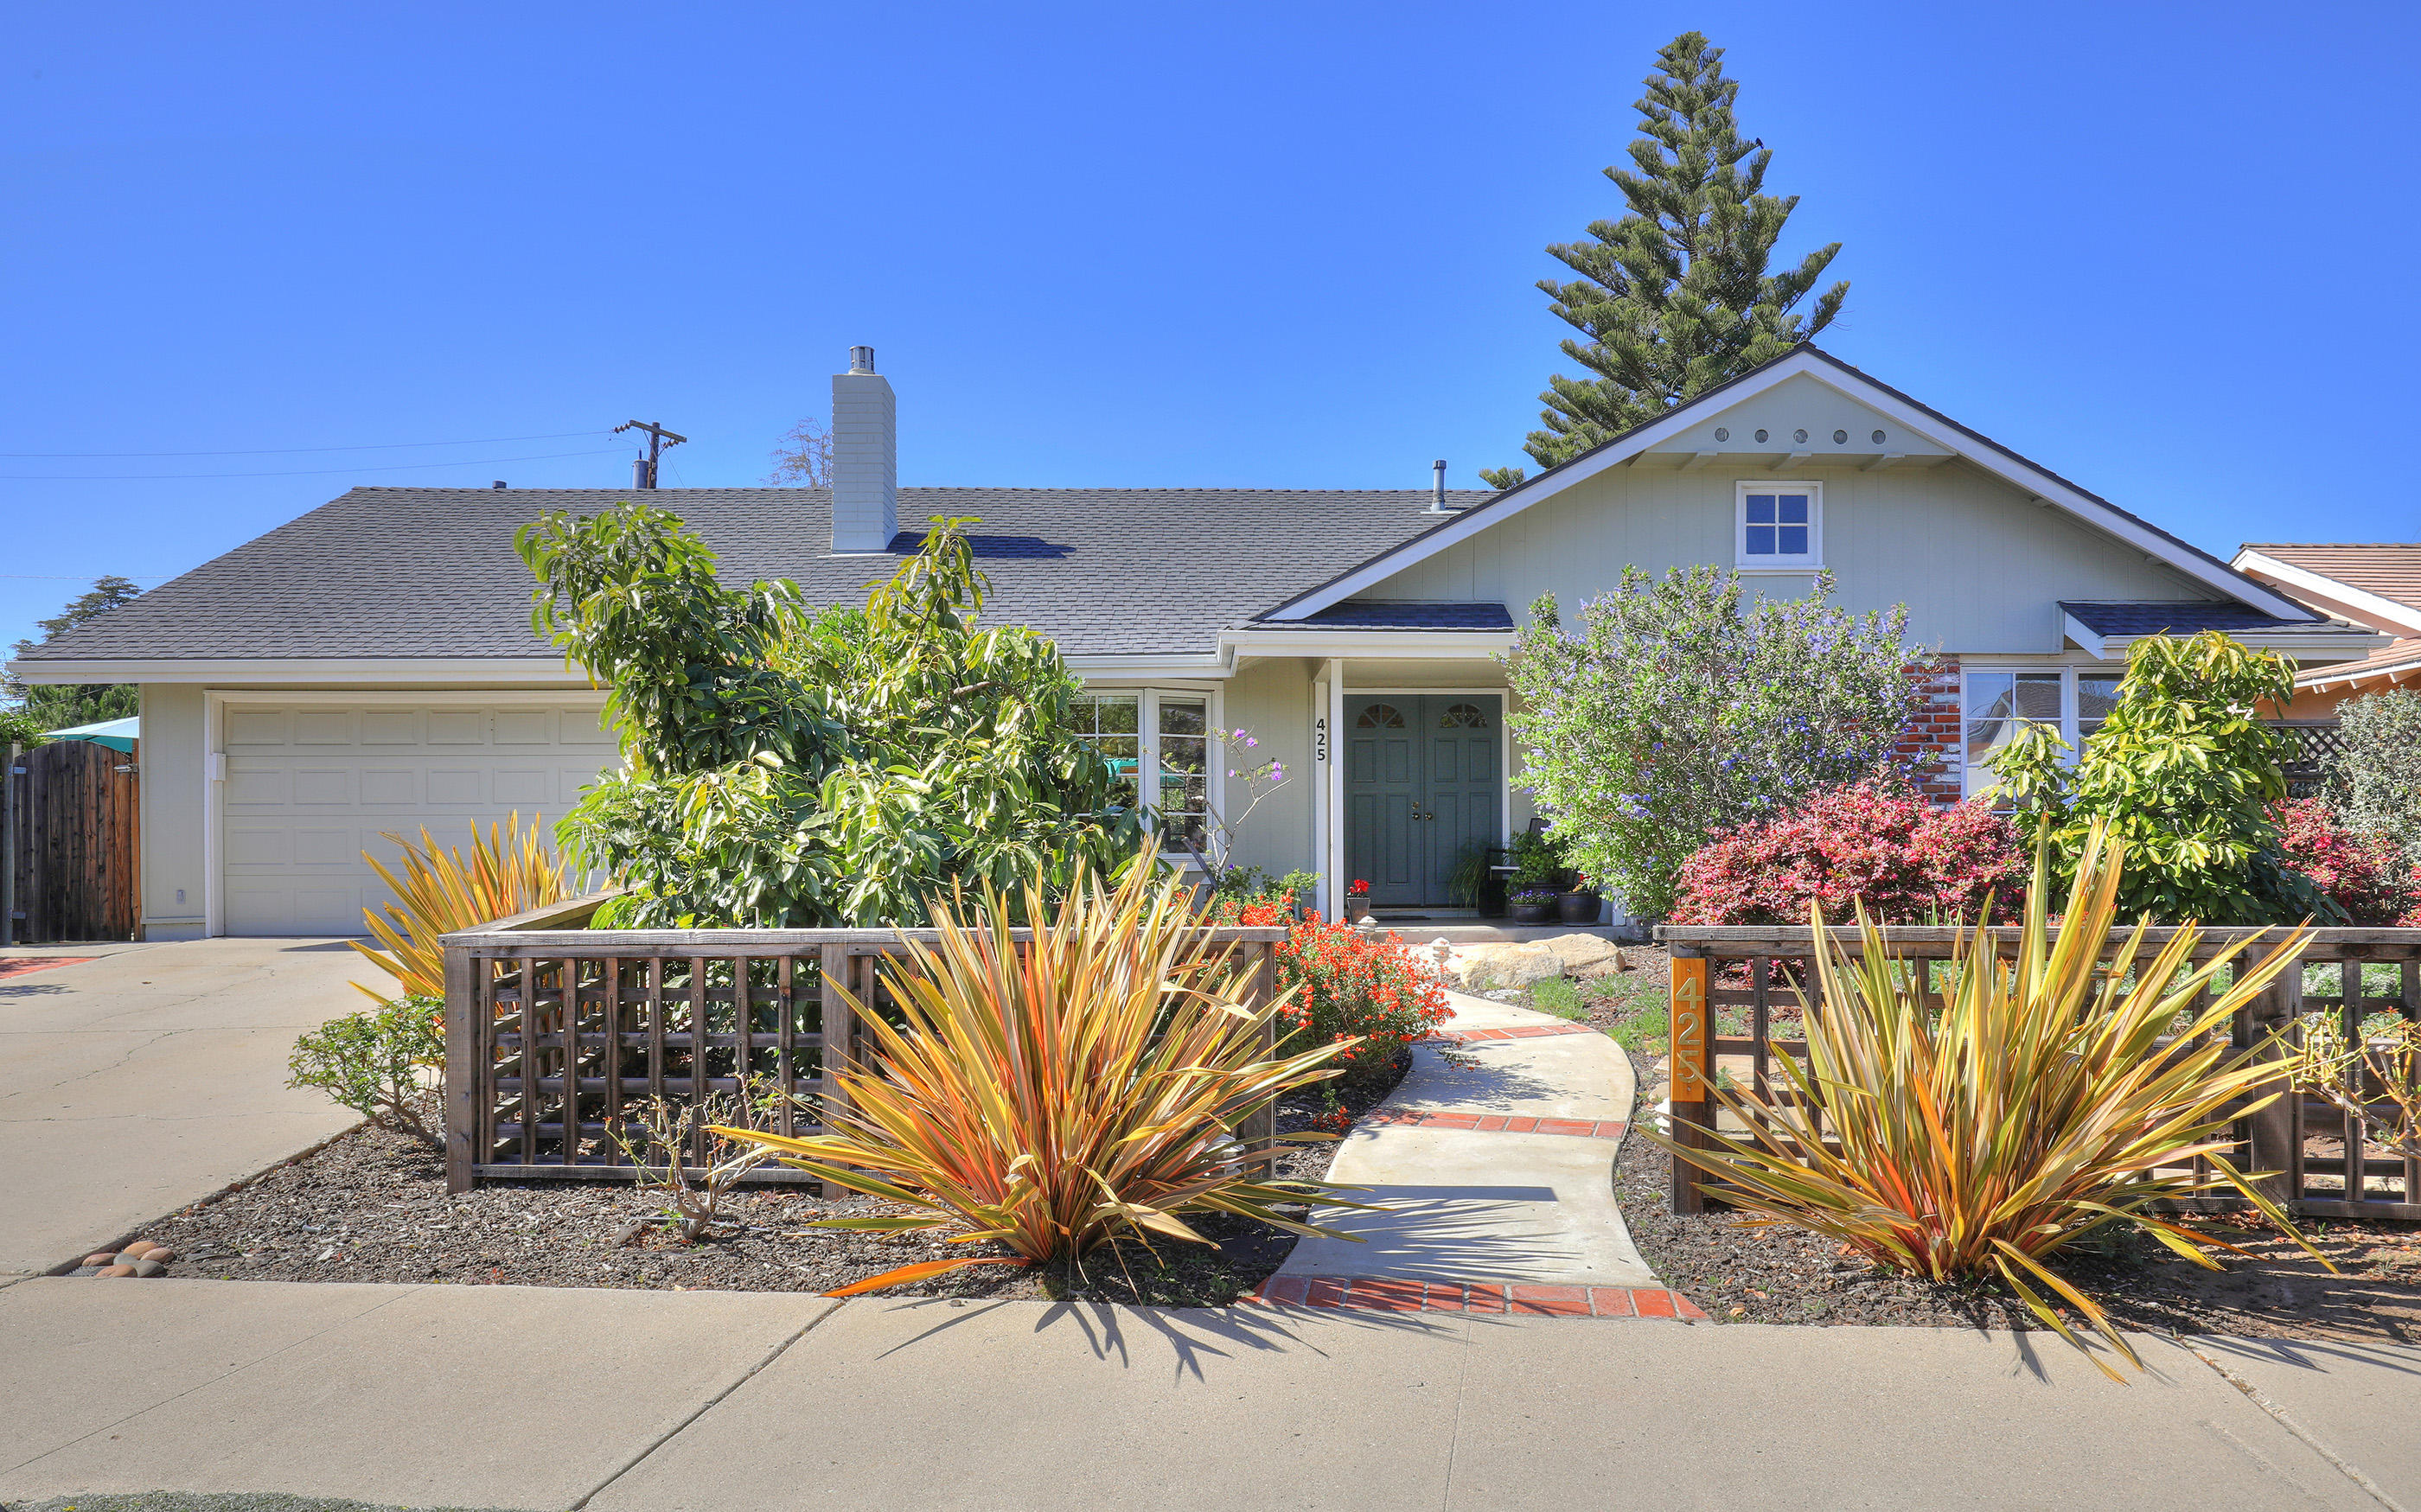 Photo of 425 Arundel Rd, GOLETA, CA 93117